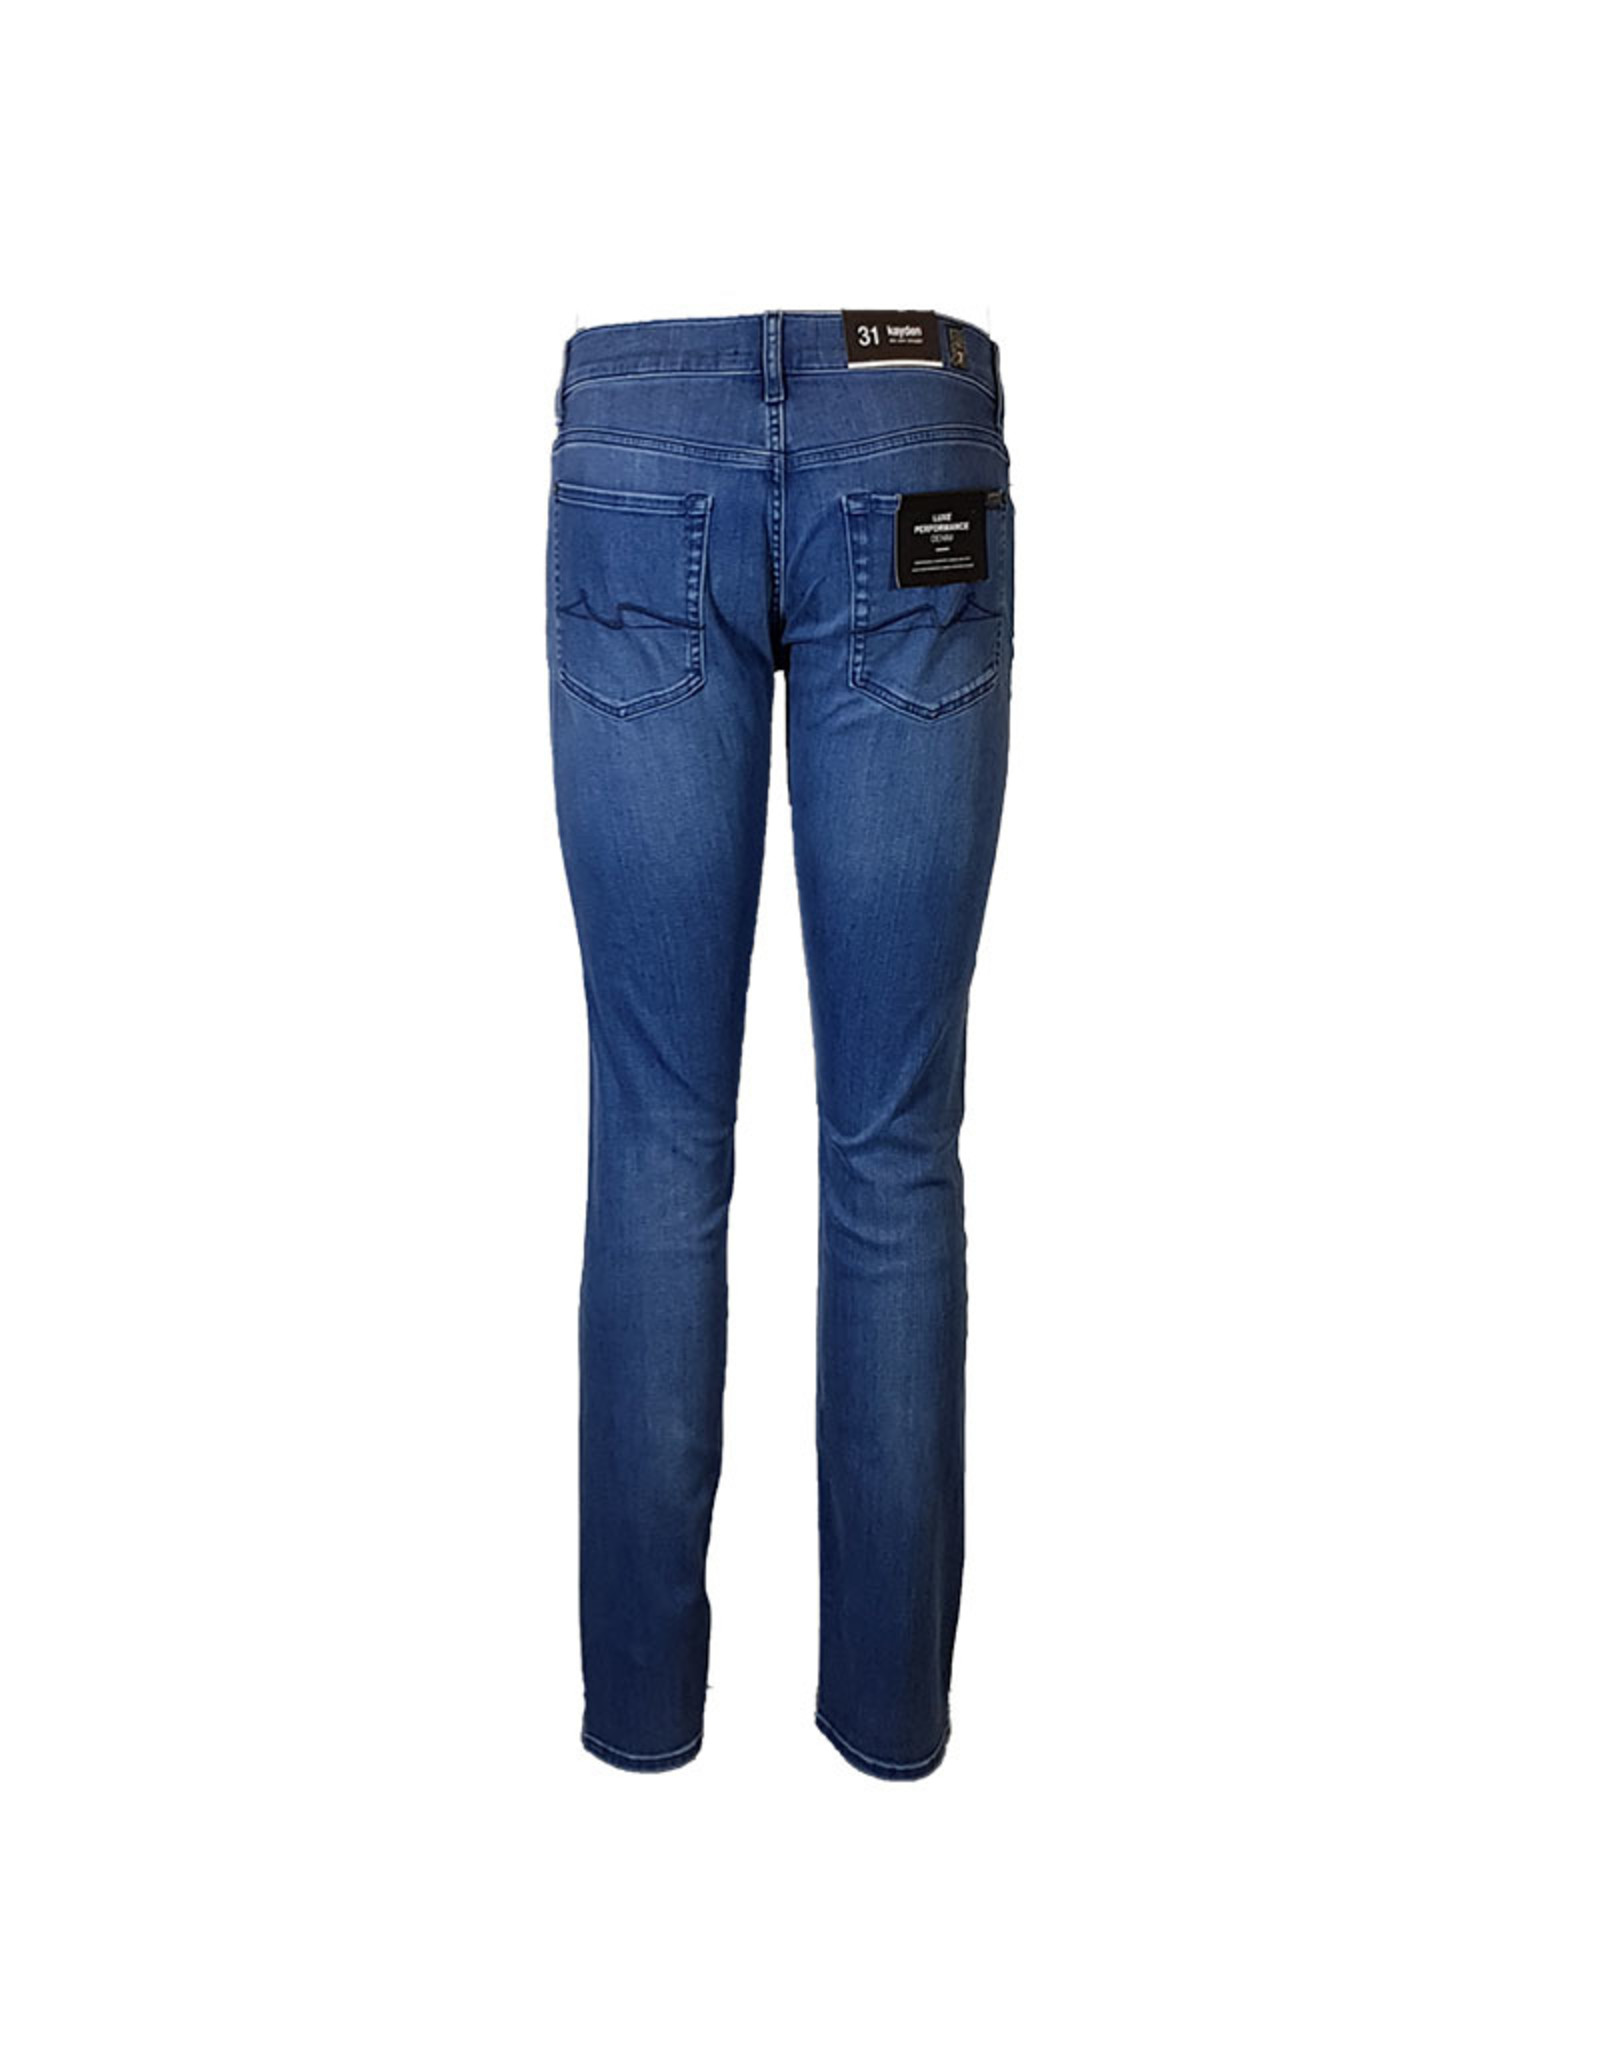 7 For All Mankind 7FAM jeans blauw Kayden JSMTR750PM